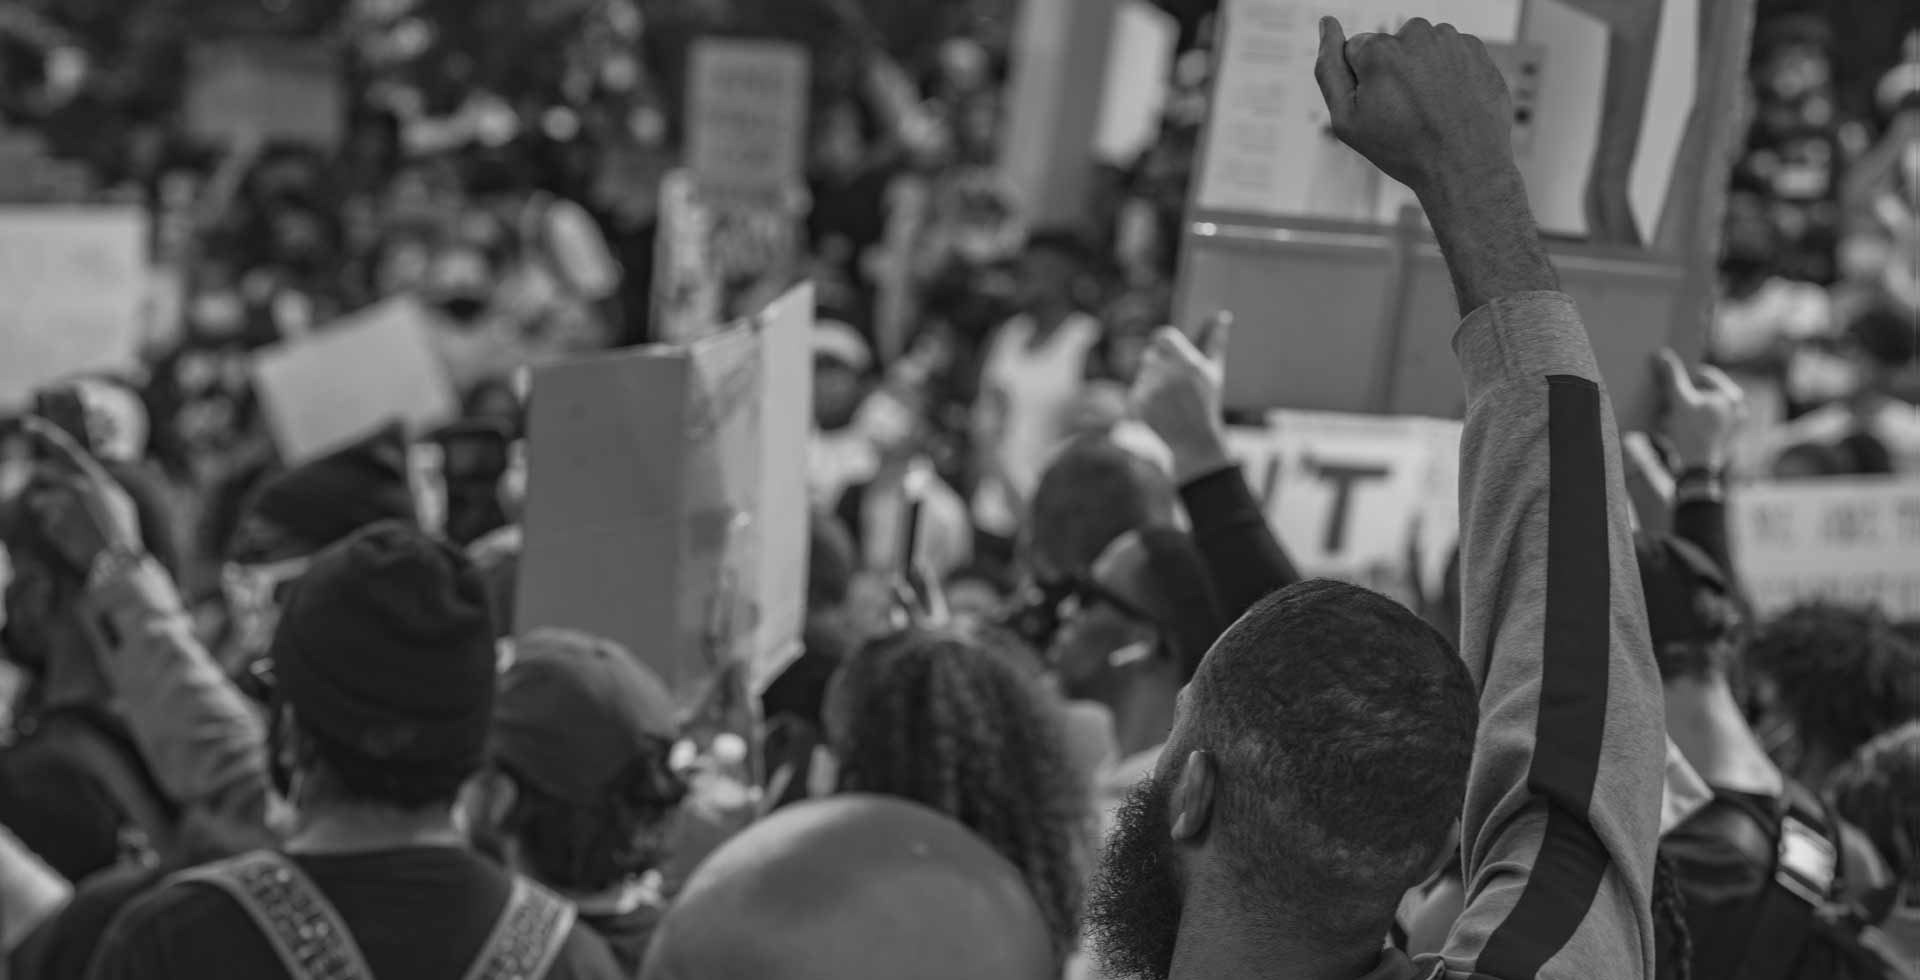 OKC Black Justice Fund Accepting Applications on Nearly $300K Available to Black-led Organizations